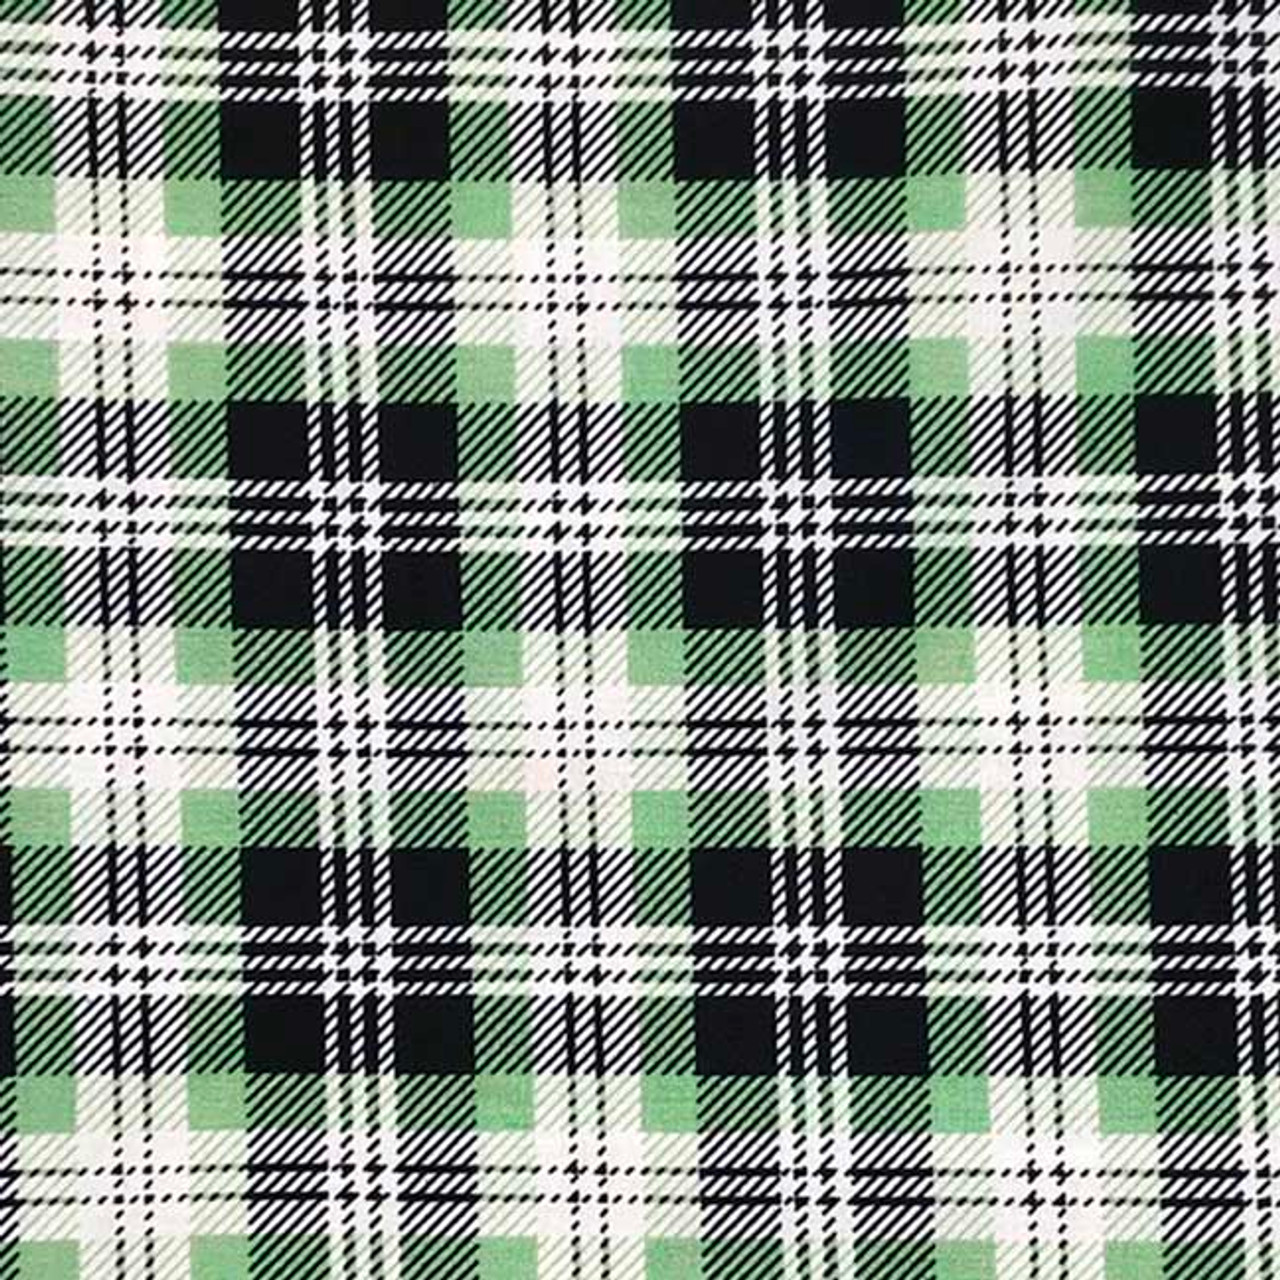 Plaid - Light Green and Black